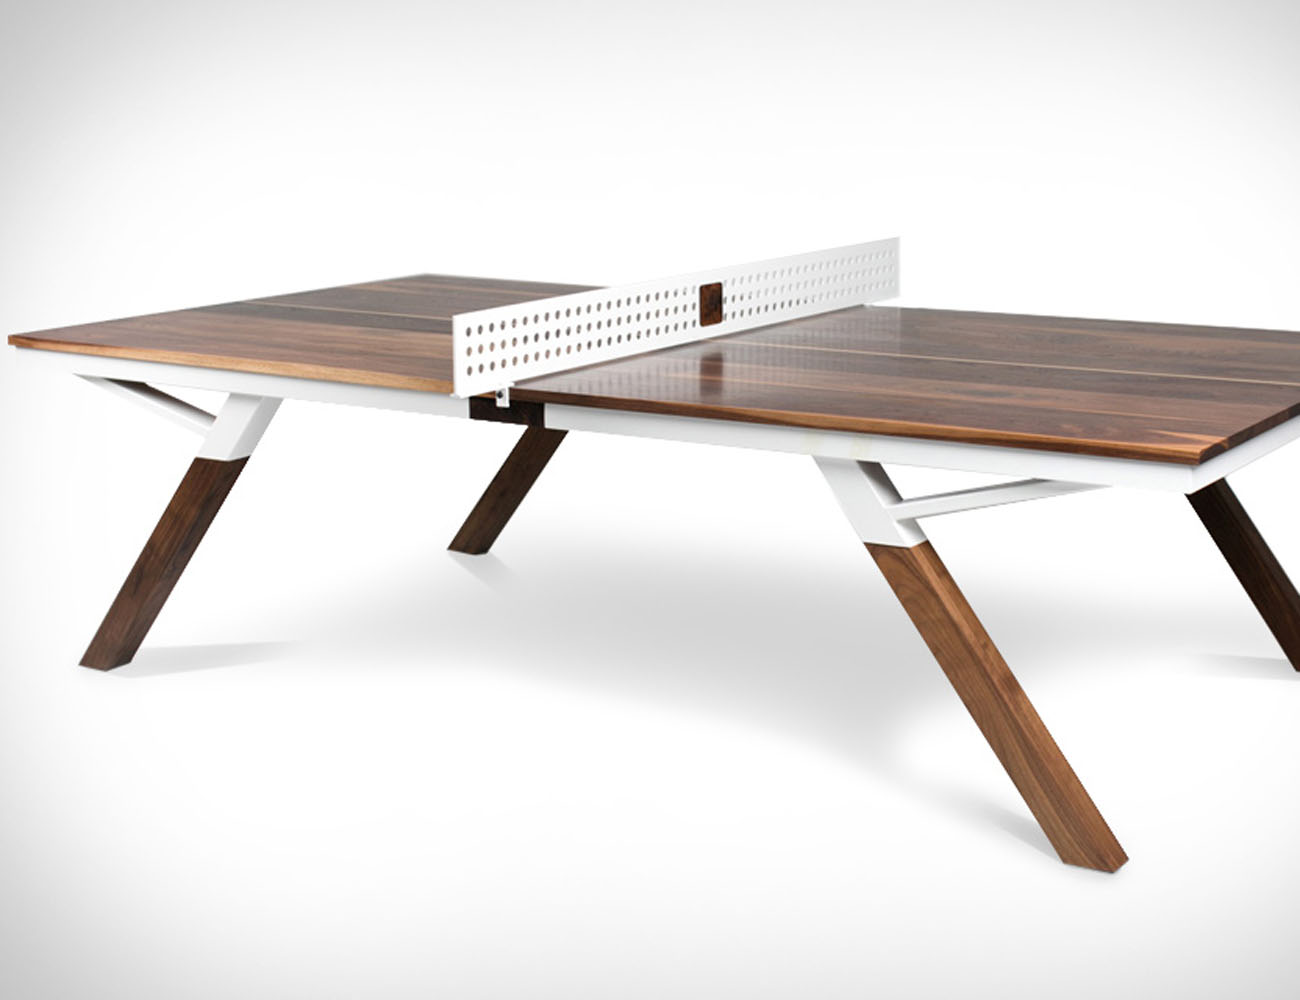 You And Me Ping Pong Table Works As A Dining Table Too